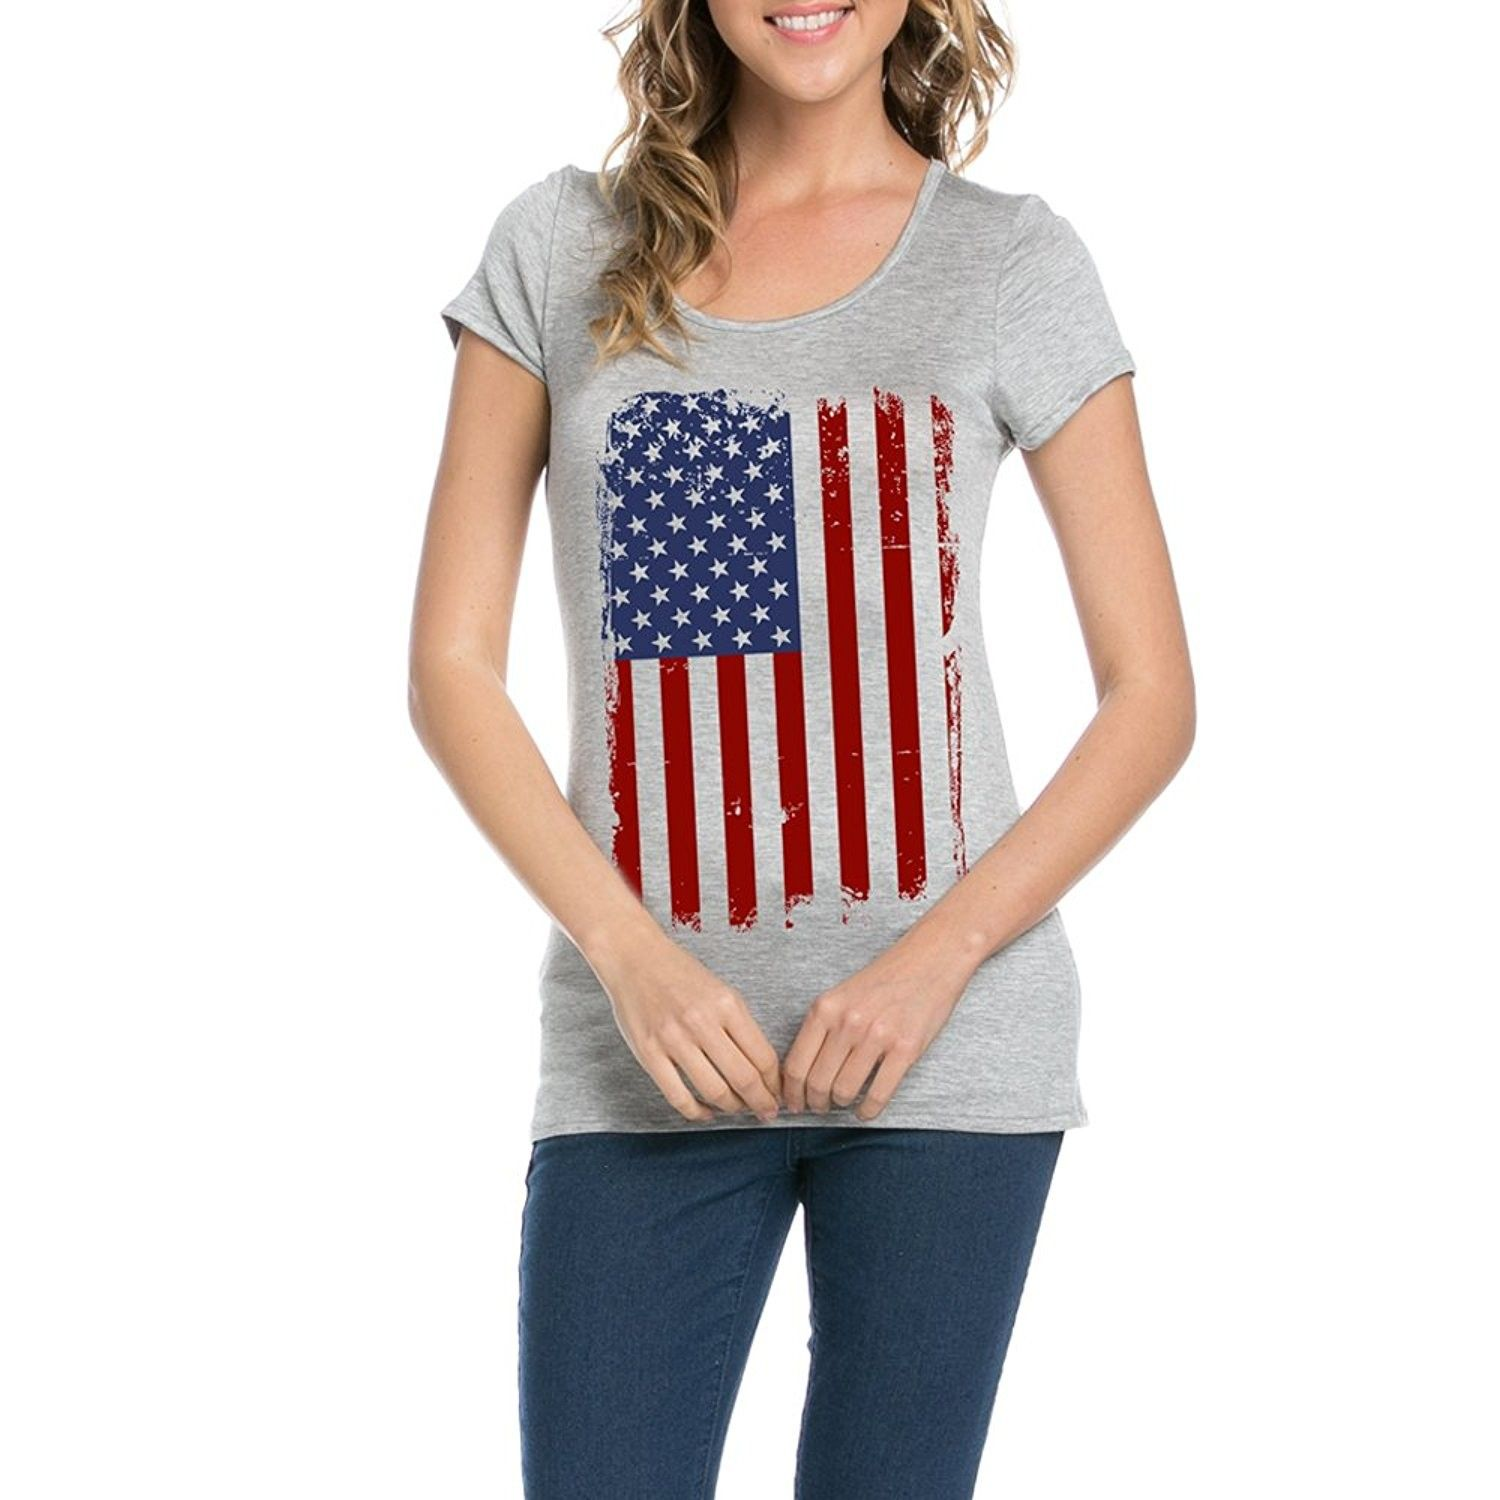 American Flag For Independence Day Women S Round Neck Short Sleeves T Shirts Nt6114 211 Grey C5183ktiewi Women Clothes Sale Clothes For Women Fashion Clothes Women